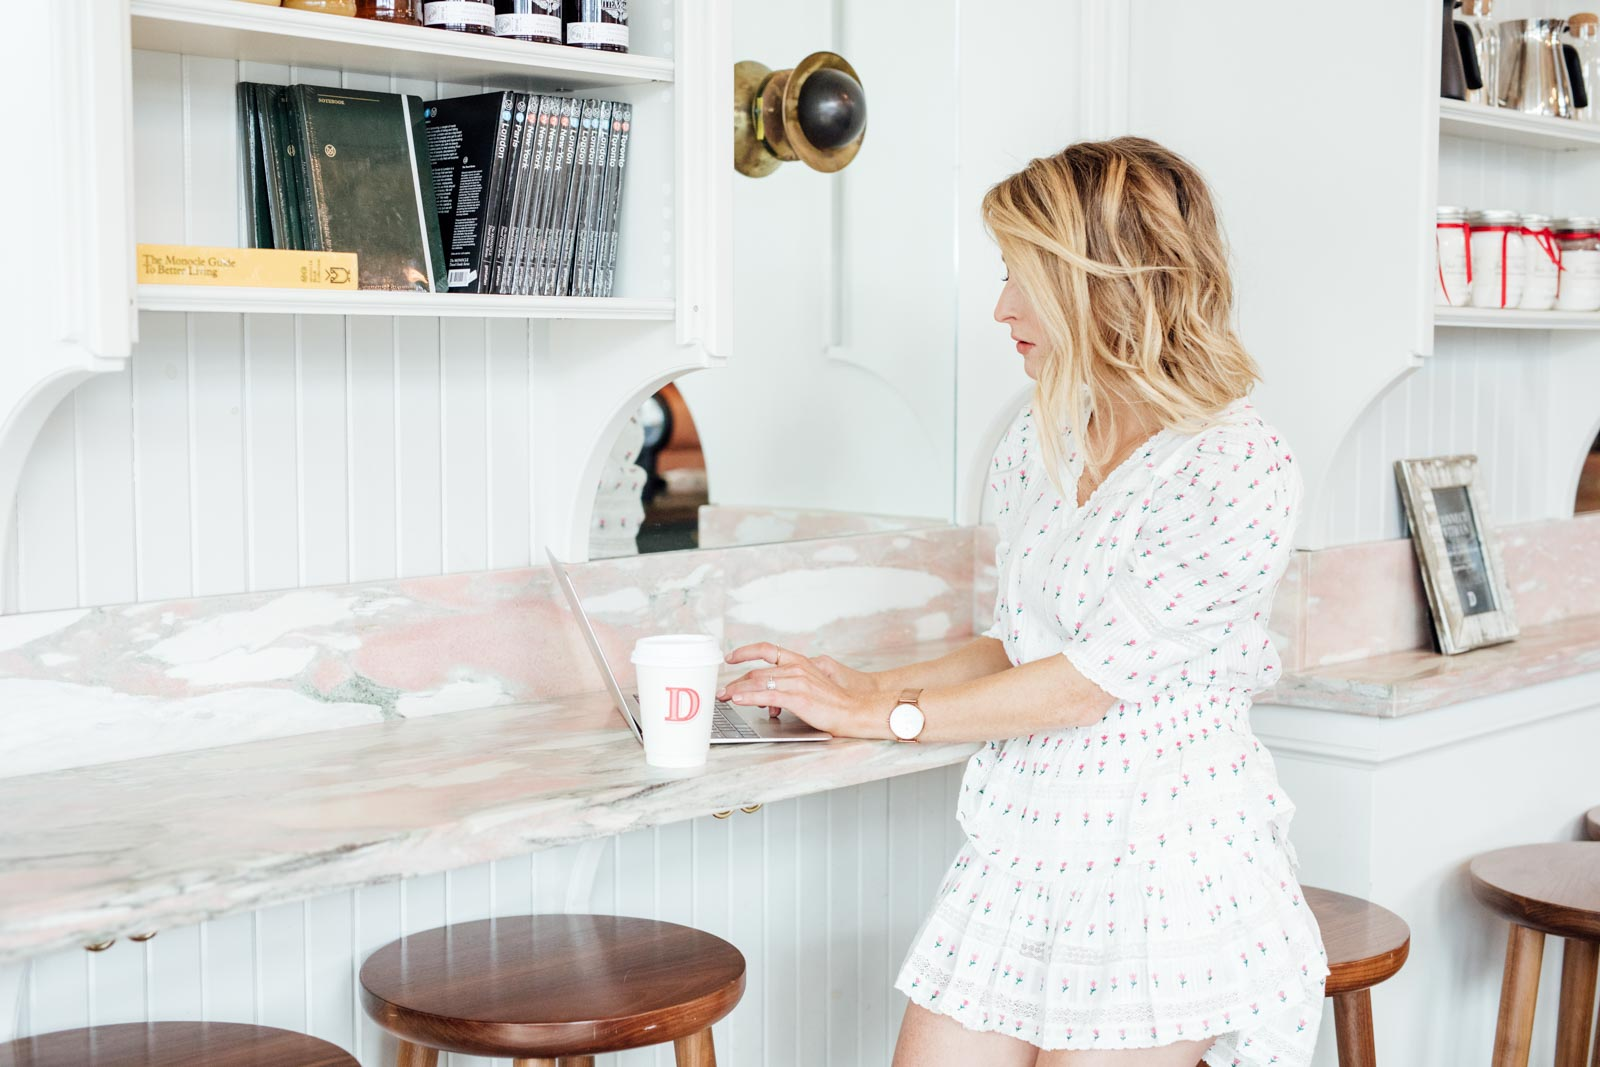 Instagram is great for brand building, but your email list is the long lasting money maker. We're sharing exactly why having an email list is important.